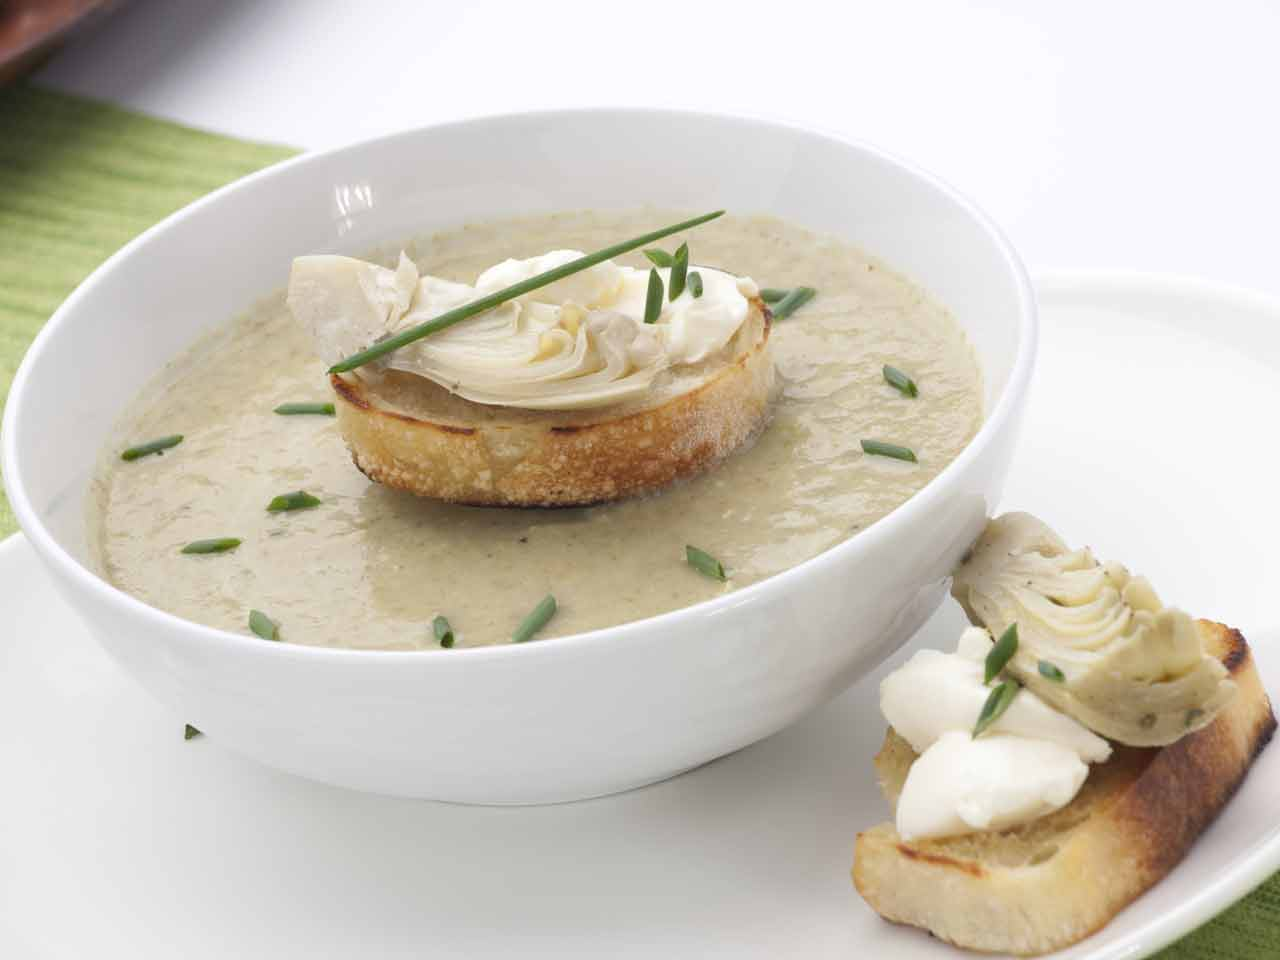 Cream of Jerusalem artichoke soup